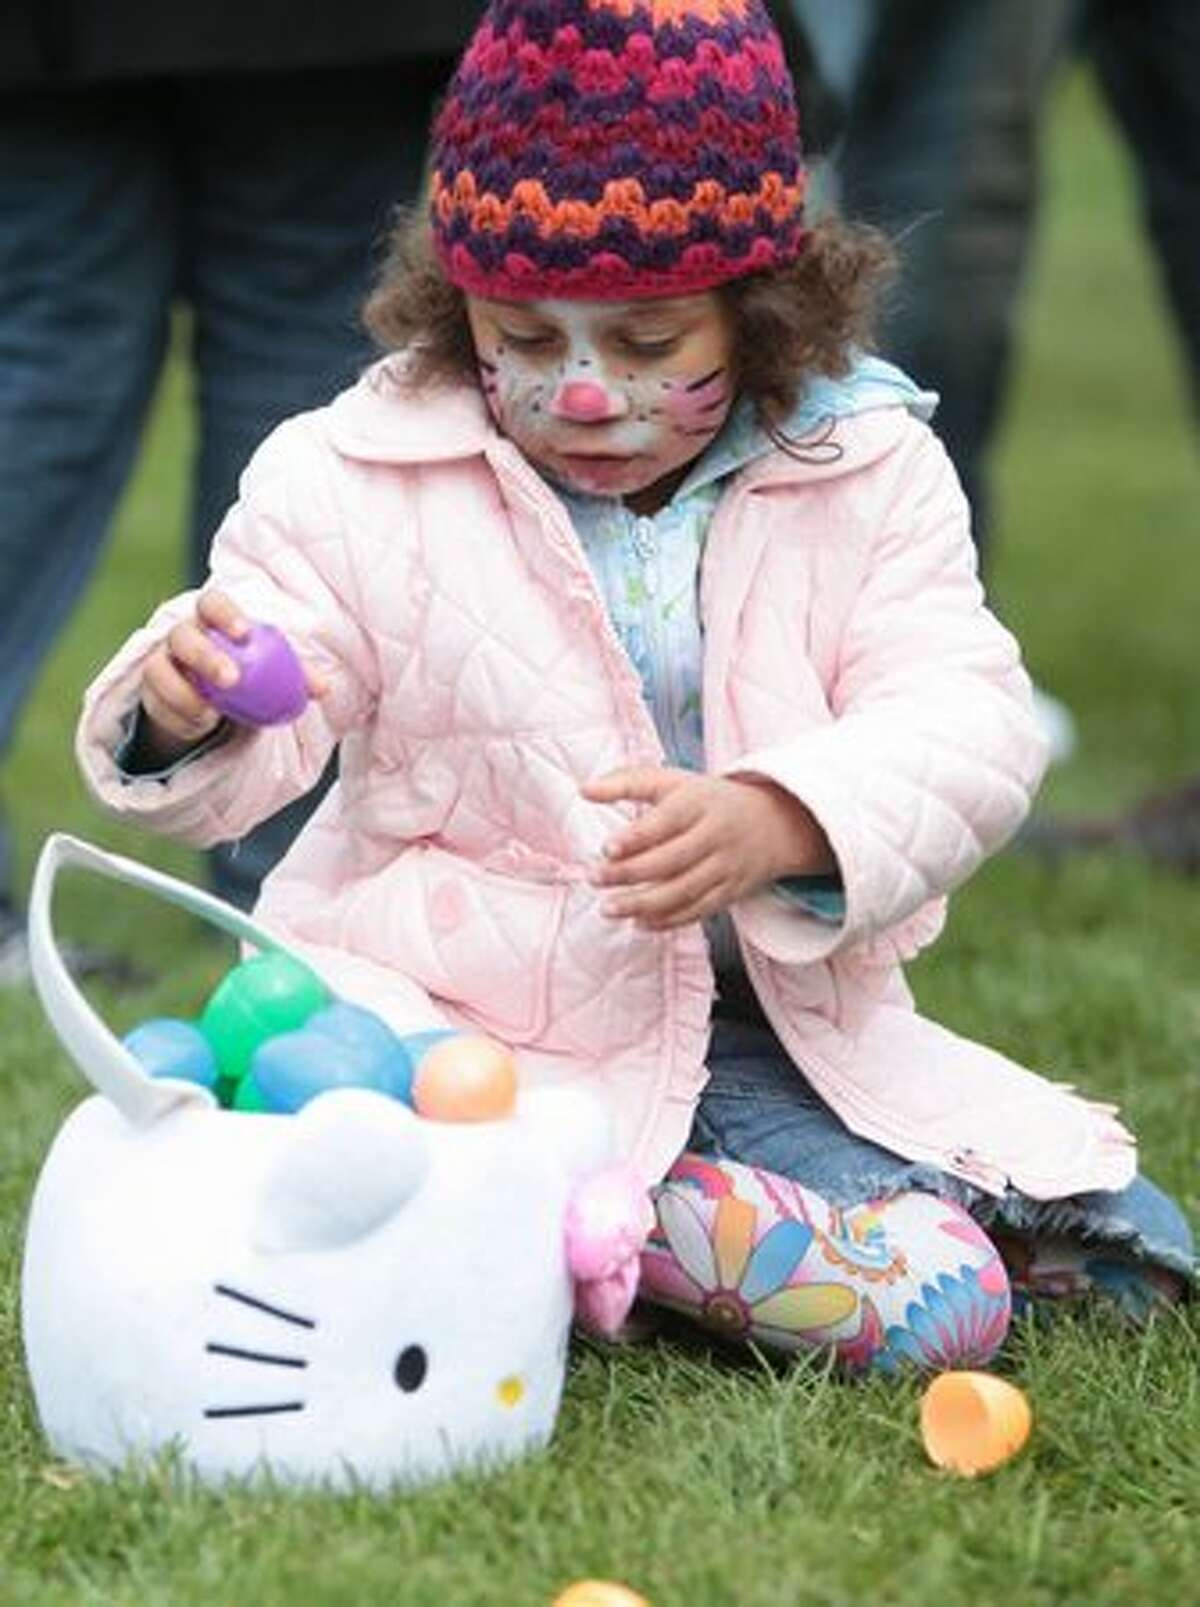 Marley Parks, 4, gathers plastic eggs during the annual Bunny Bounce Easter egg hunt at Woodland Park Zoo.